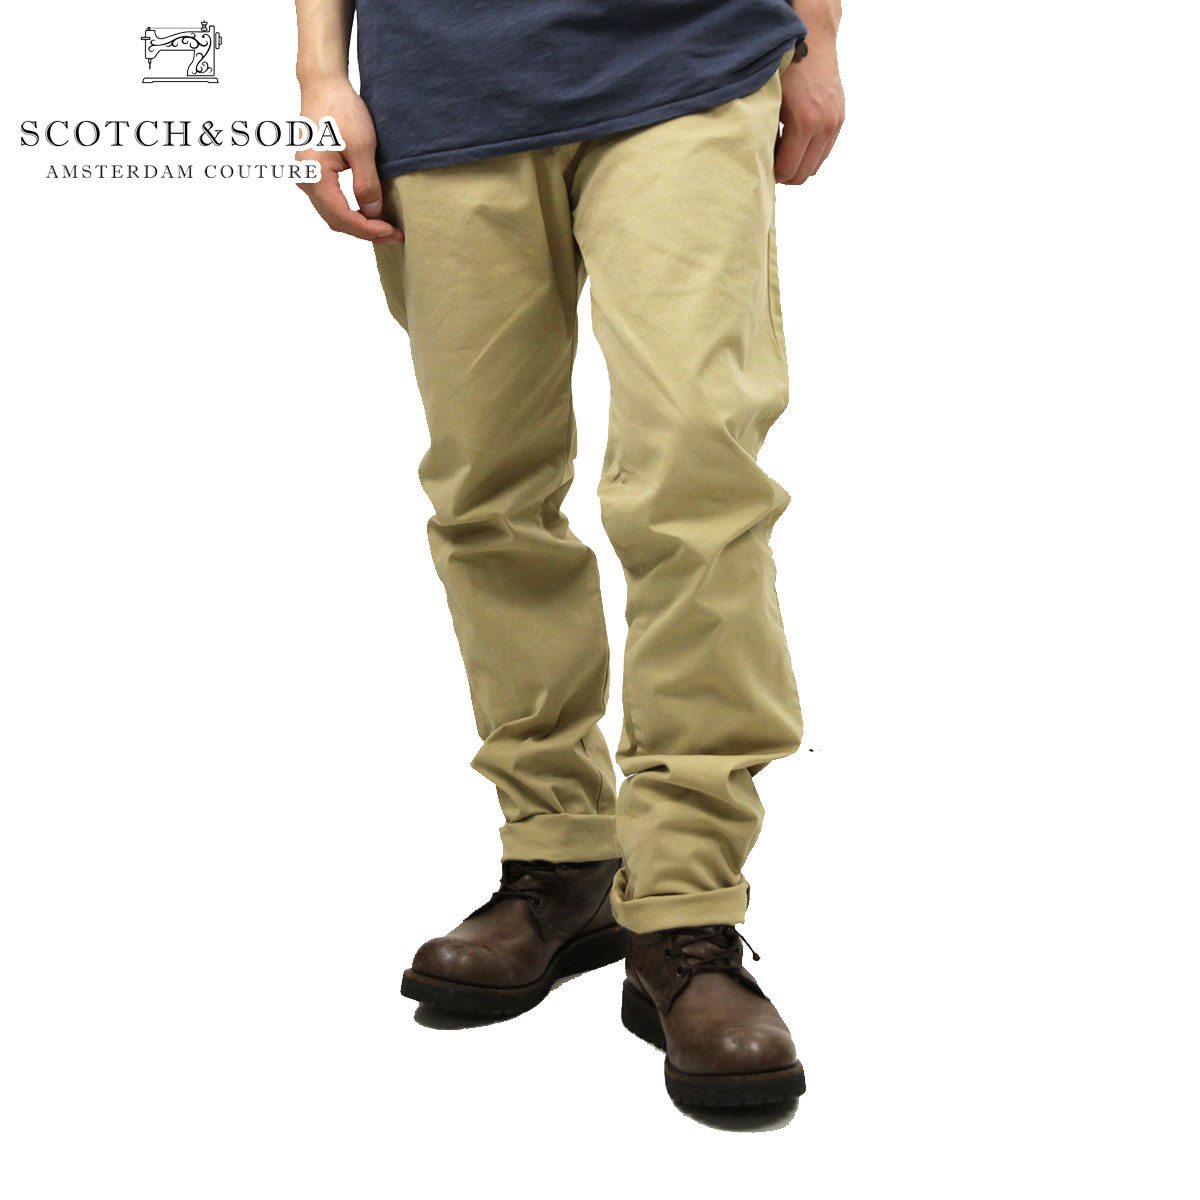 スコッチアンドソーダ SCOTCH&SODA 正規販売店 メンズ チノ Basic garment dyed chino. Slim fit - Stuart. Sold with belt 80001 06 D15S25